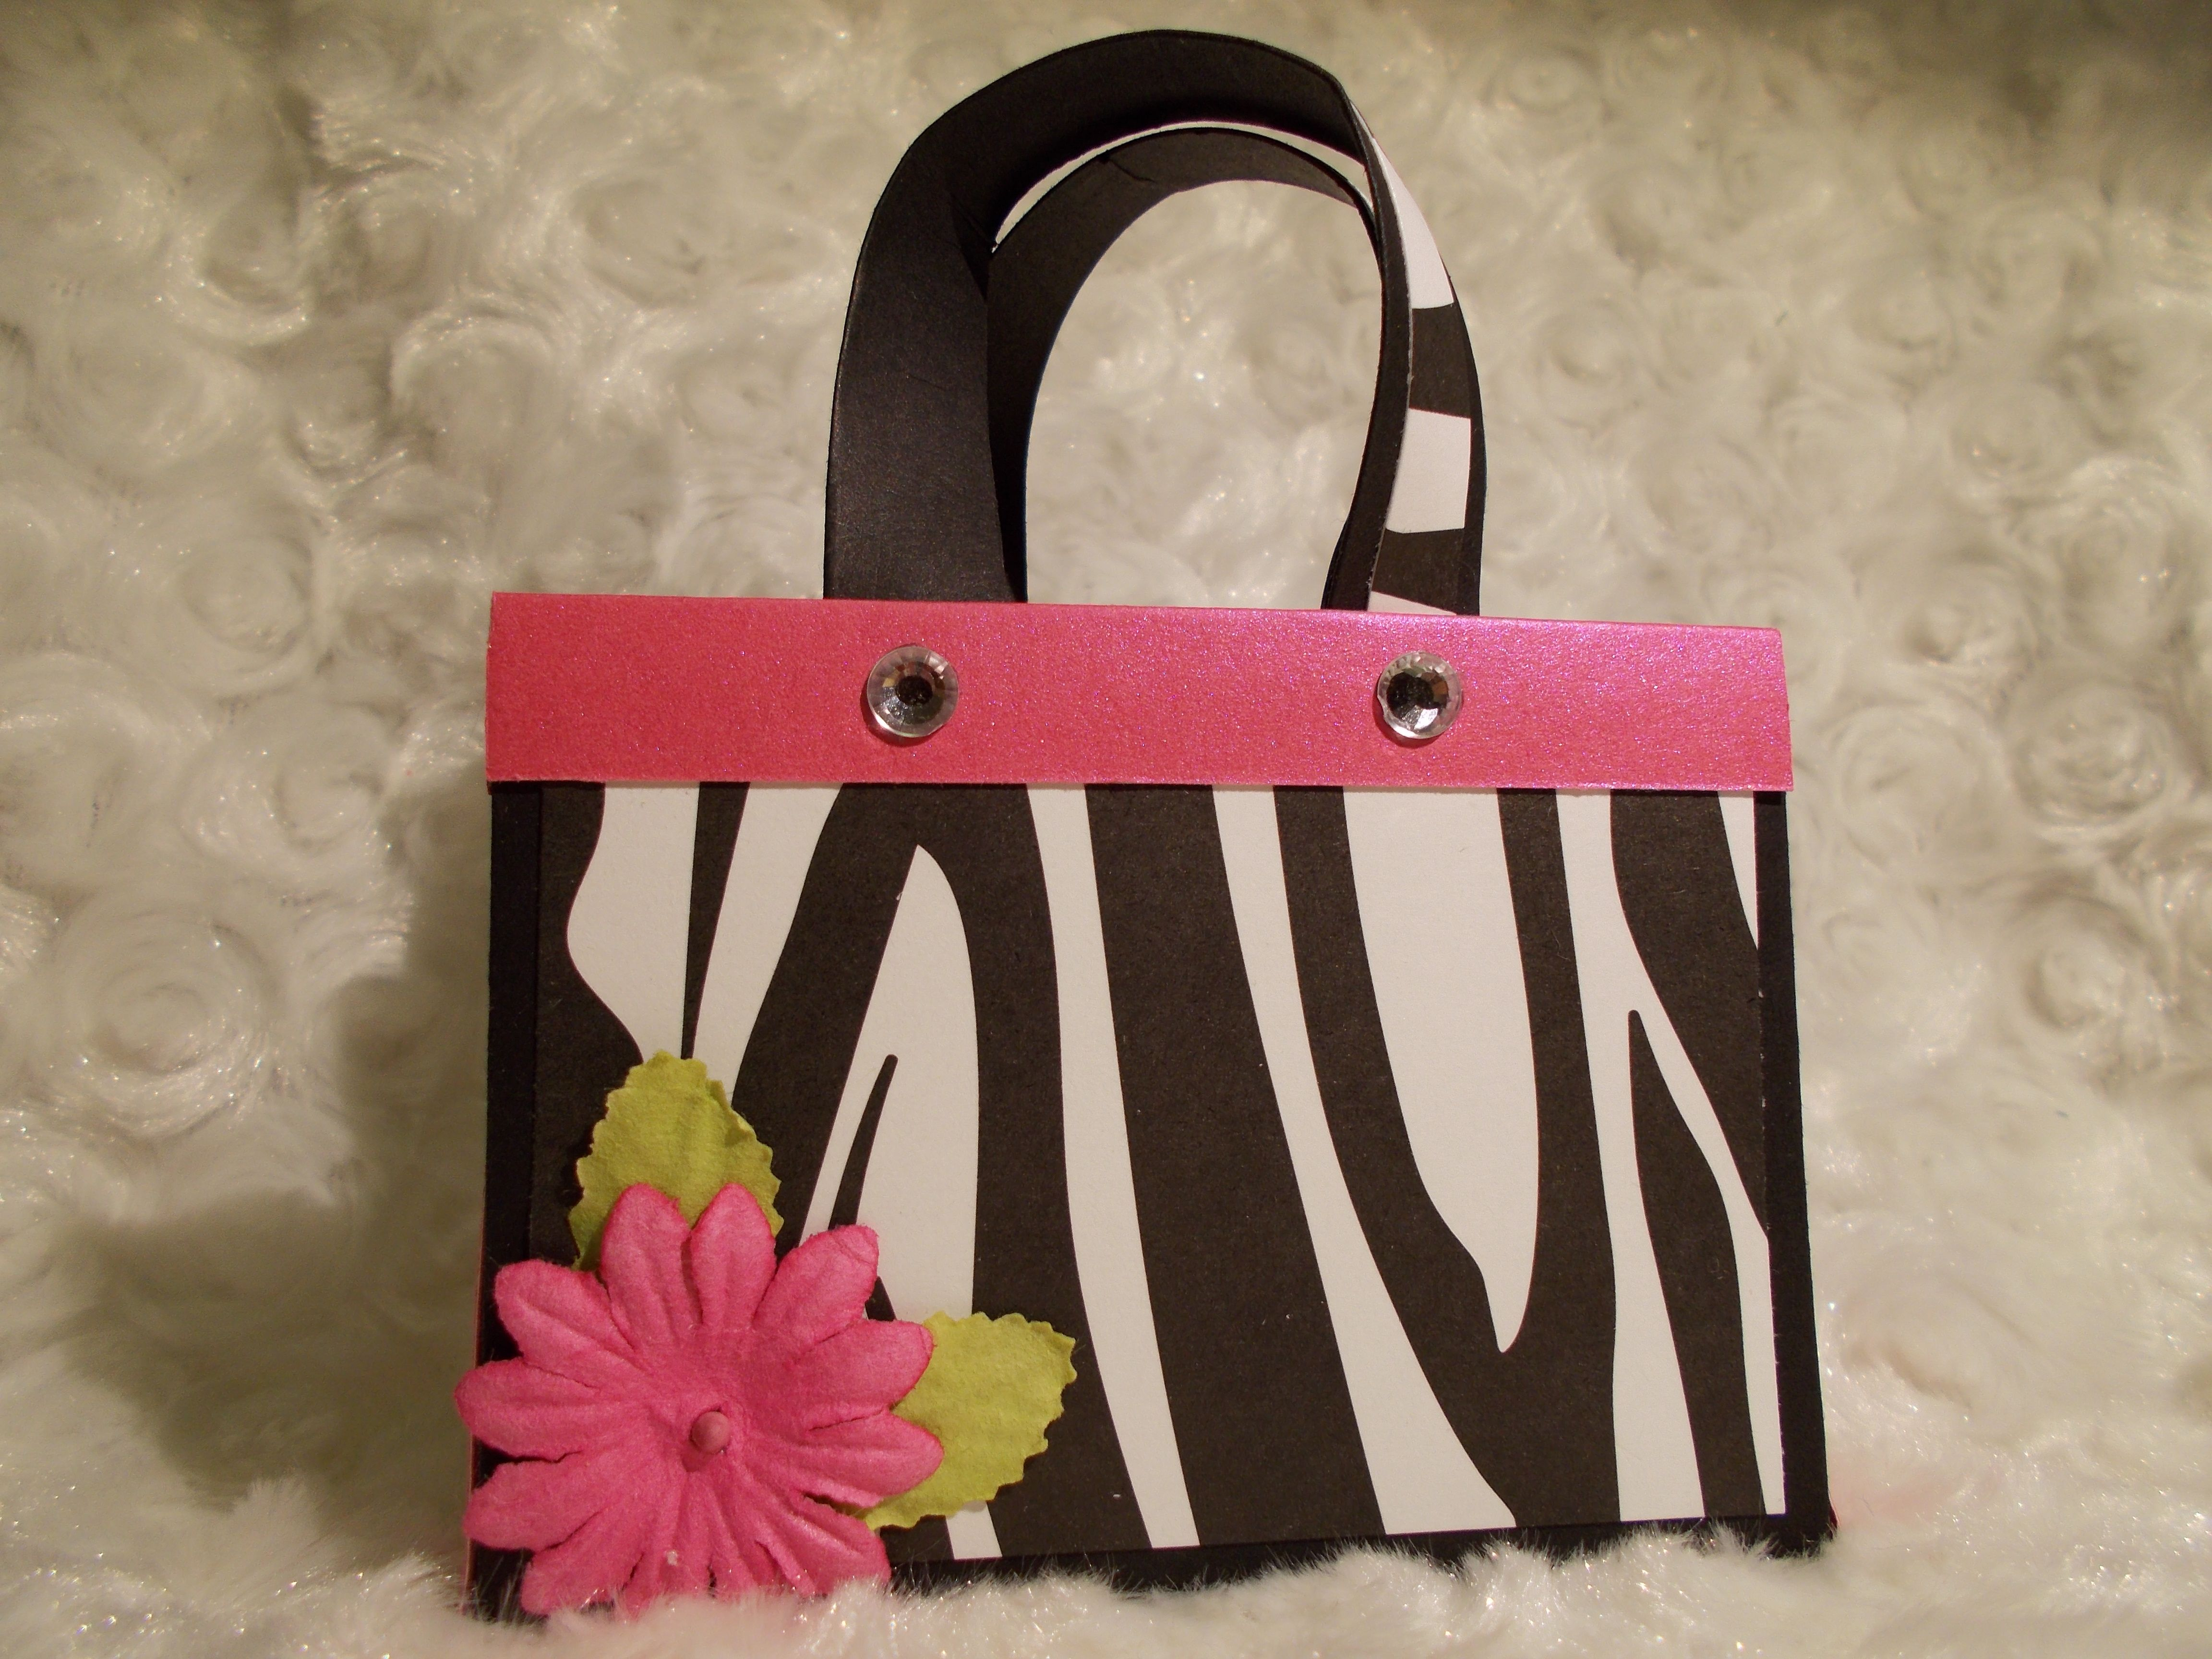 Gift bag/favor bag gift card or candy holder purse created by http://crafts-by-melinda.blogspot.com/